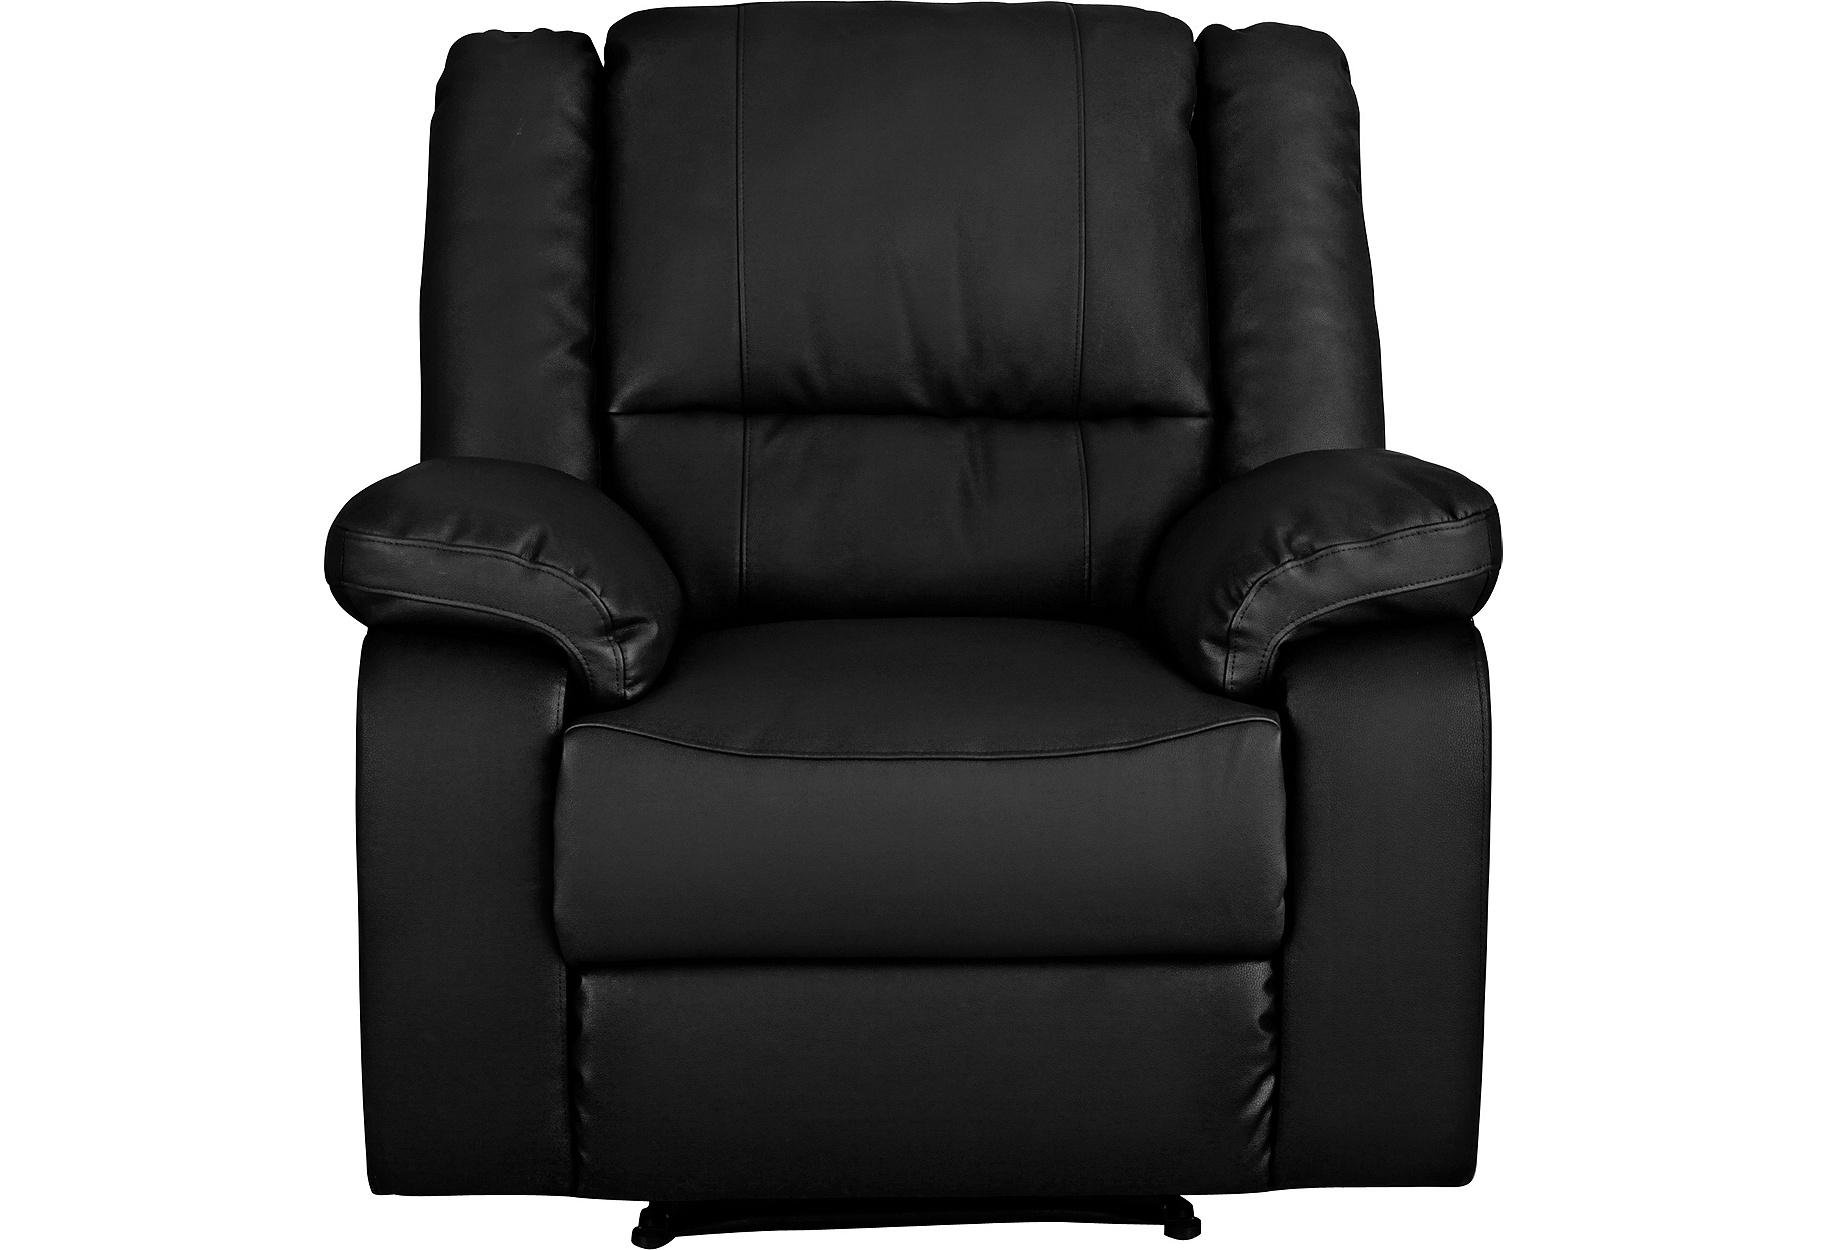 HOME Bruno Leather Effect Manual Recliner Chair - Black  sc 1 st  Argos & Buy HOME Bruno Leather Effect Manual Recliner Chair - Black at ... islam-shia.org